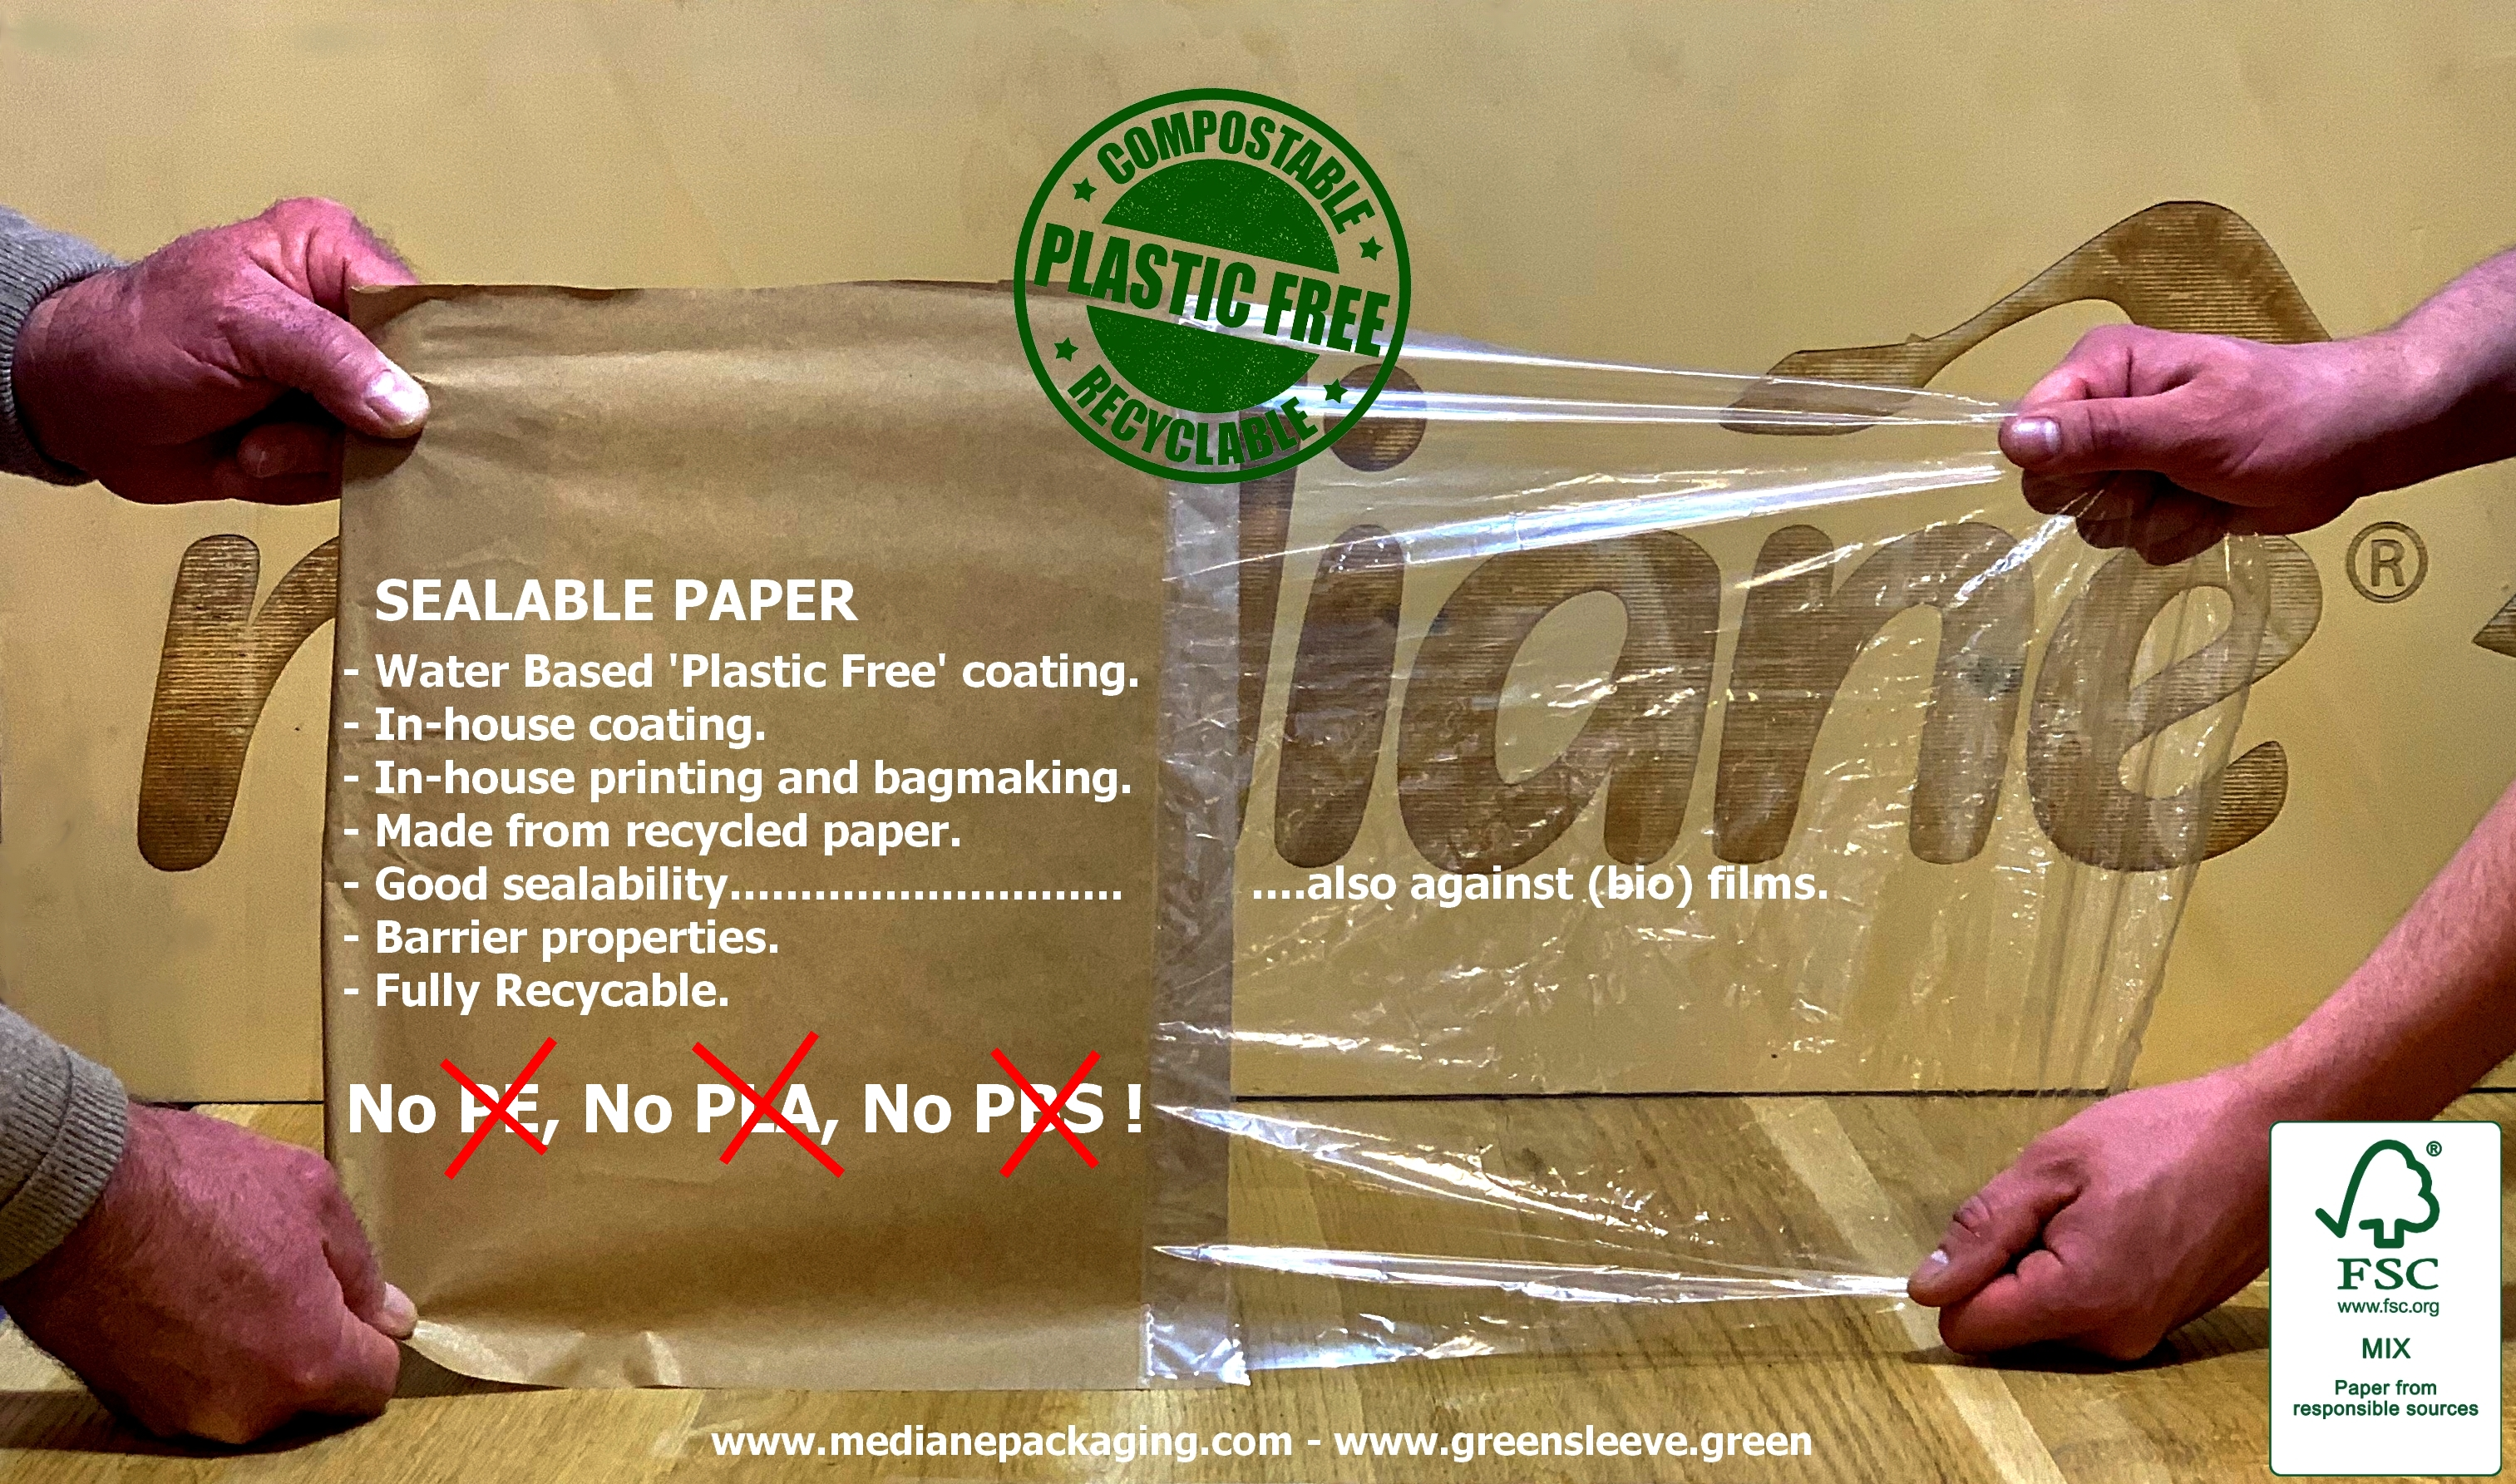 Introducing SEALPAP! Sealable Papers